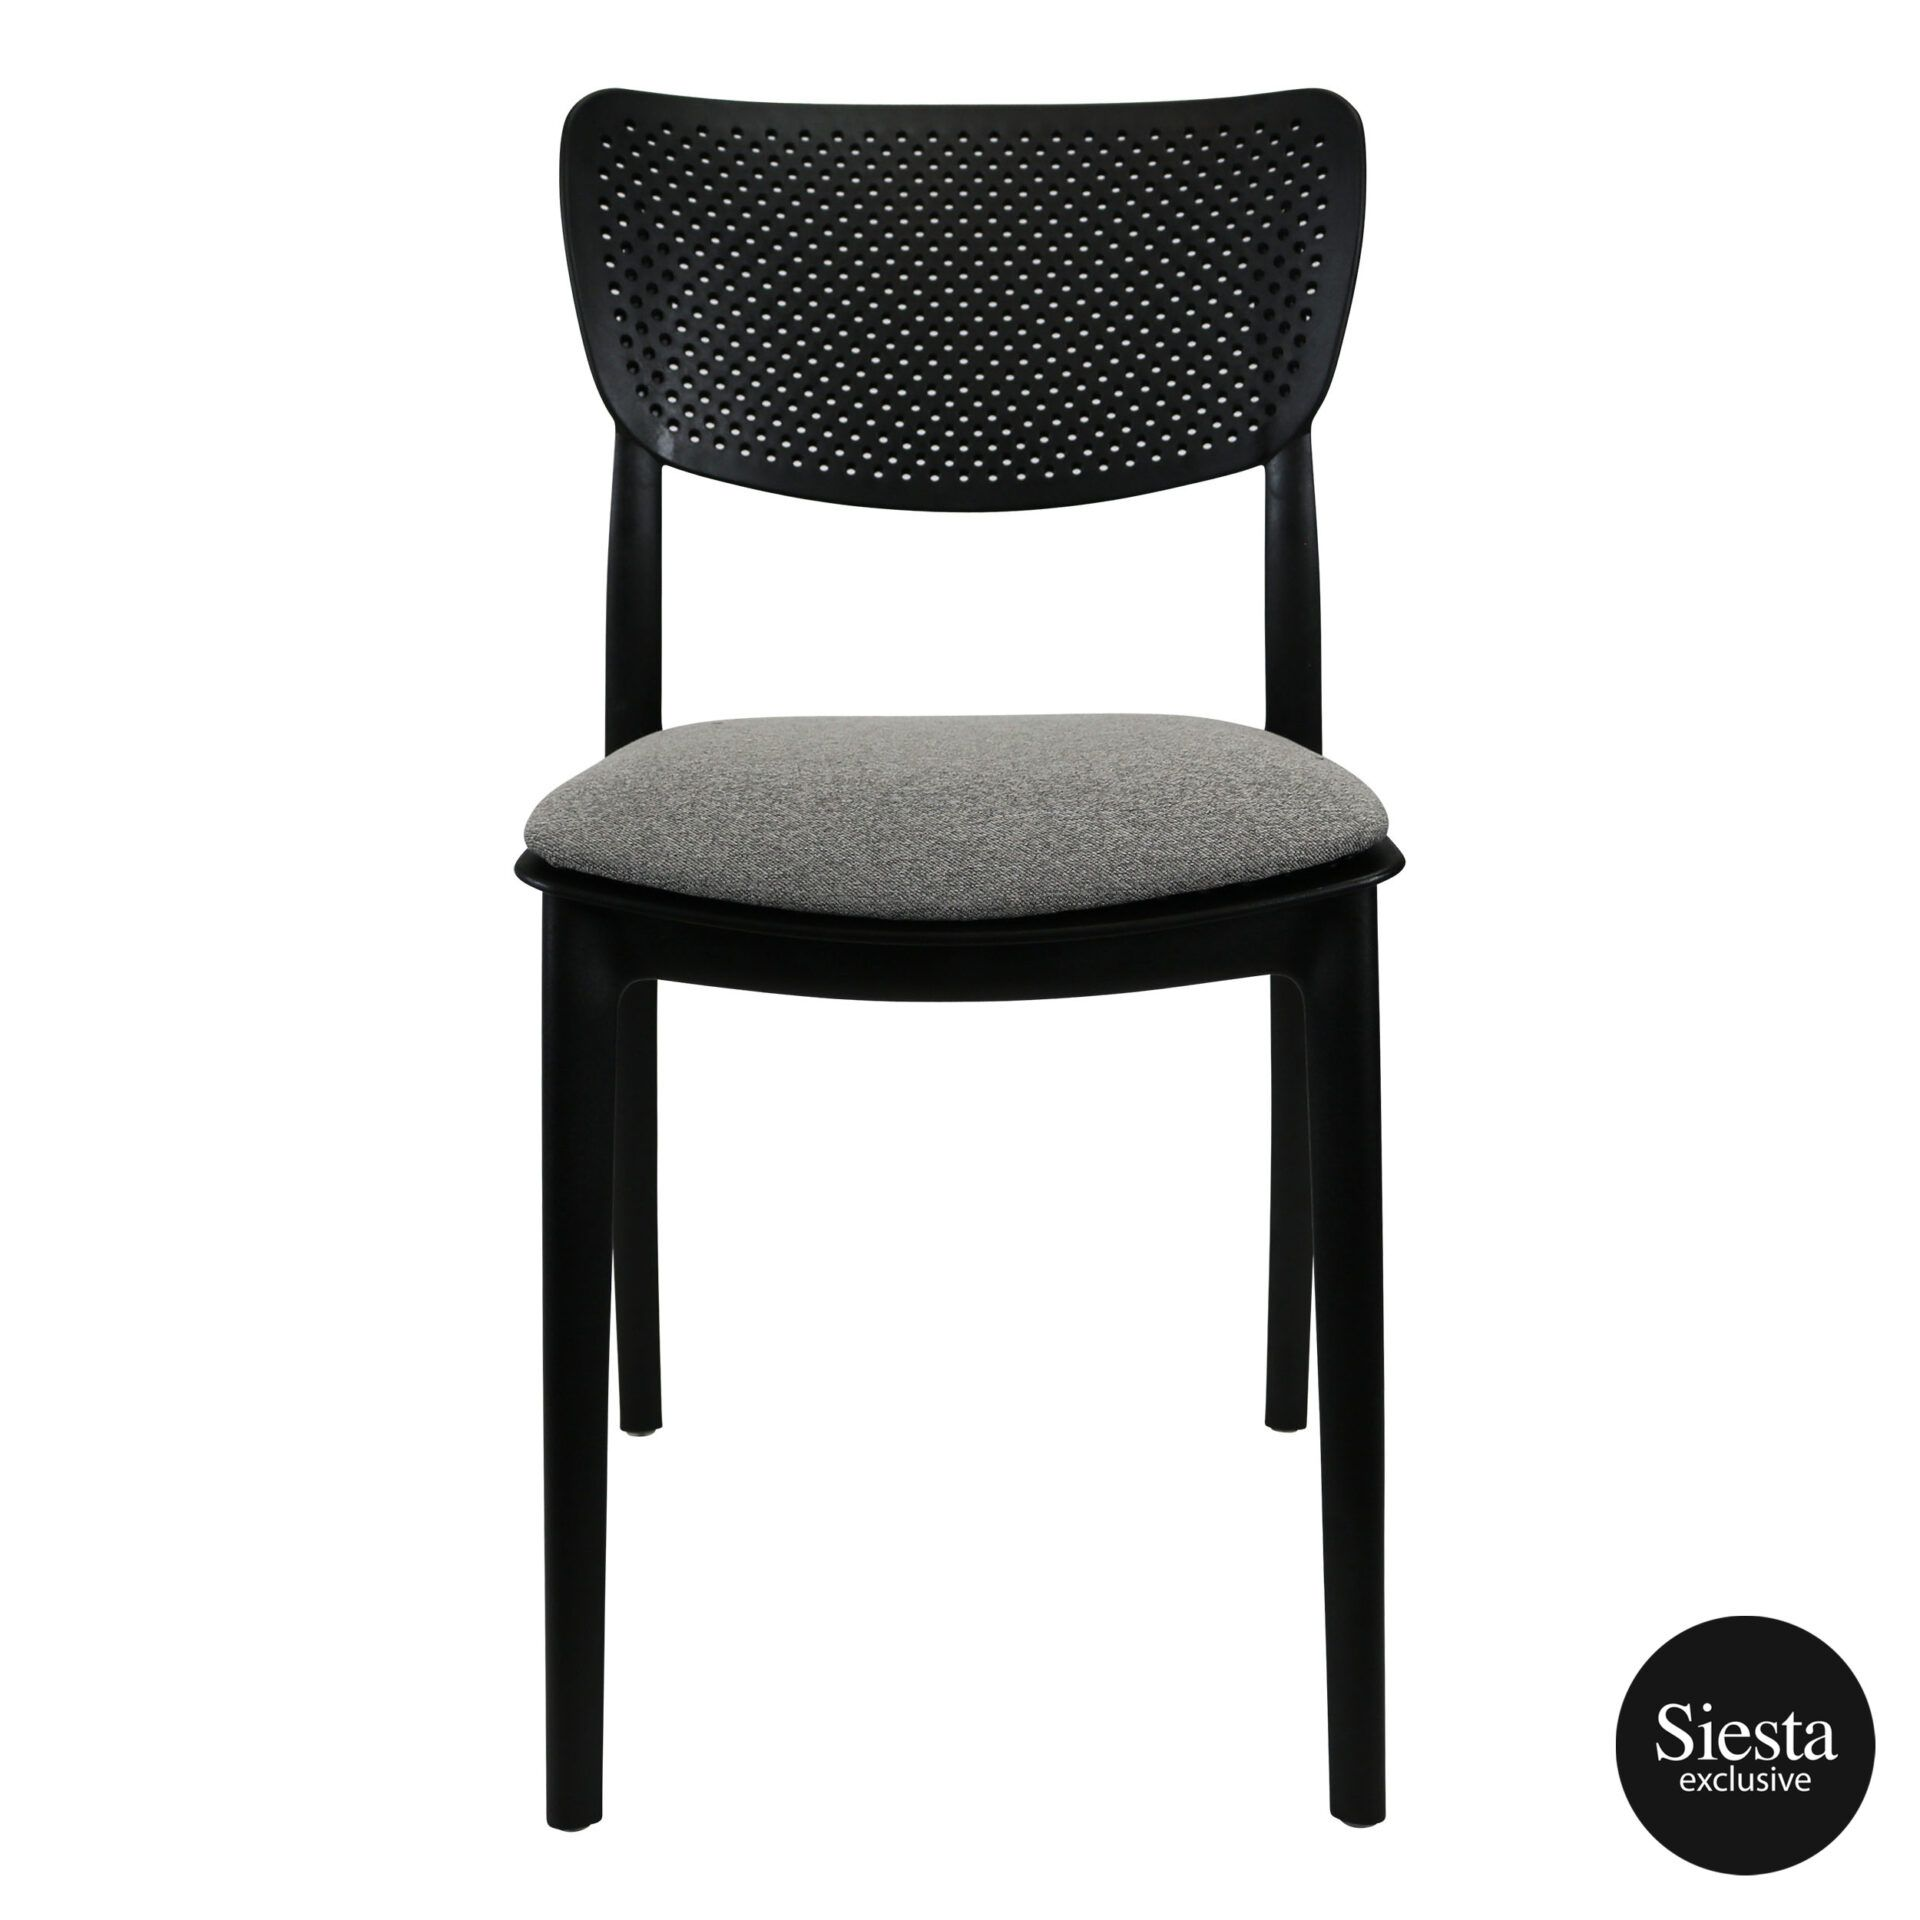 lucy chair black c2